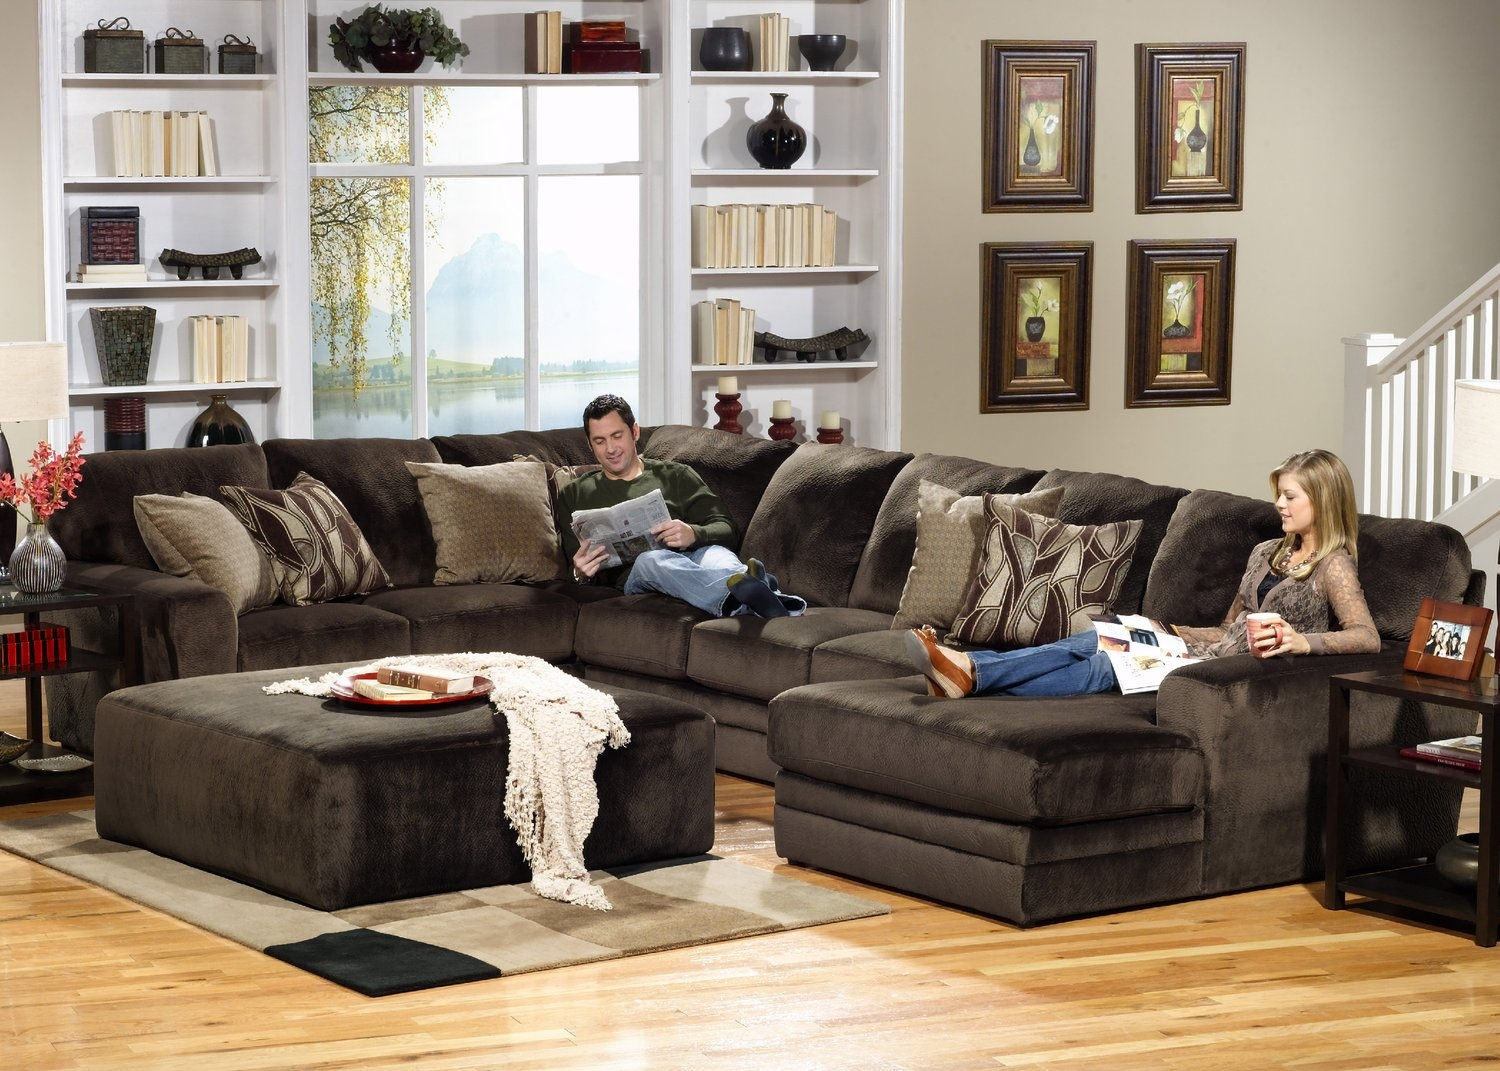 Rainier 3 Piece Sectional | Hom Furniture Throughout St Cloud Mn Sectional Sofas (View 6 of 10)